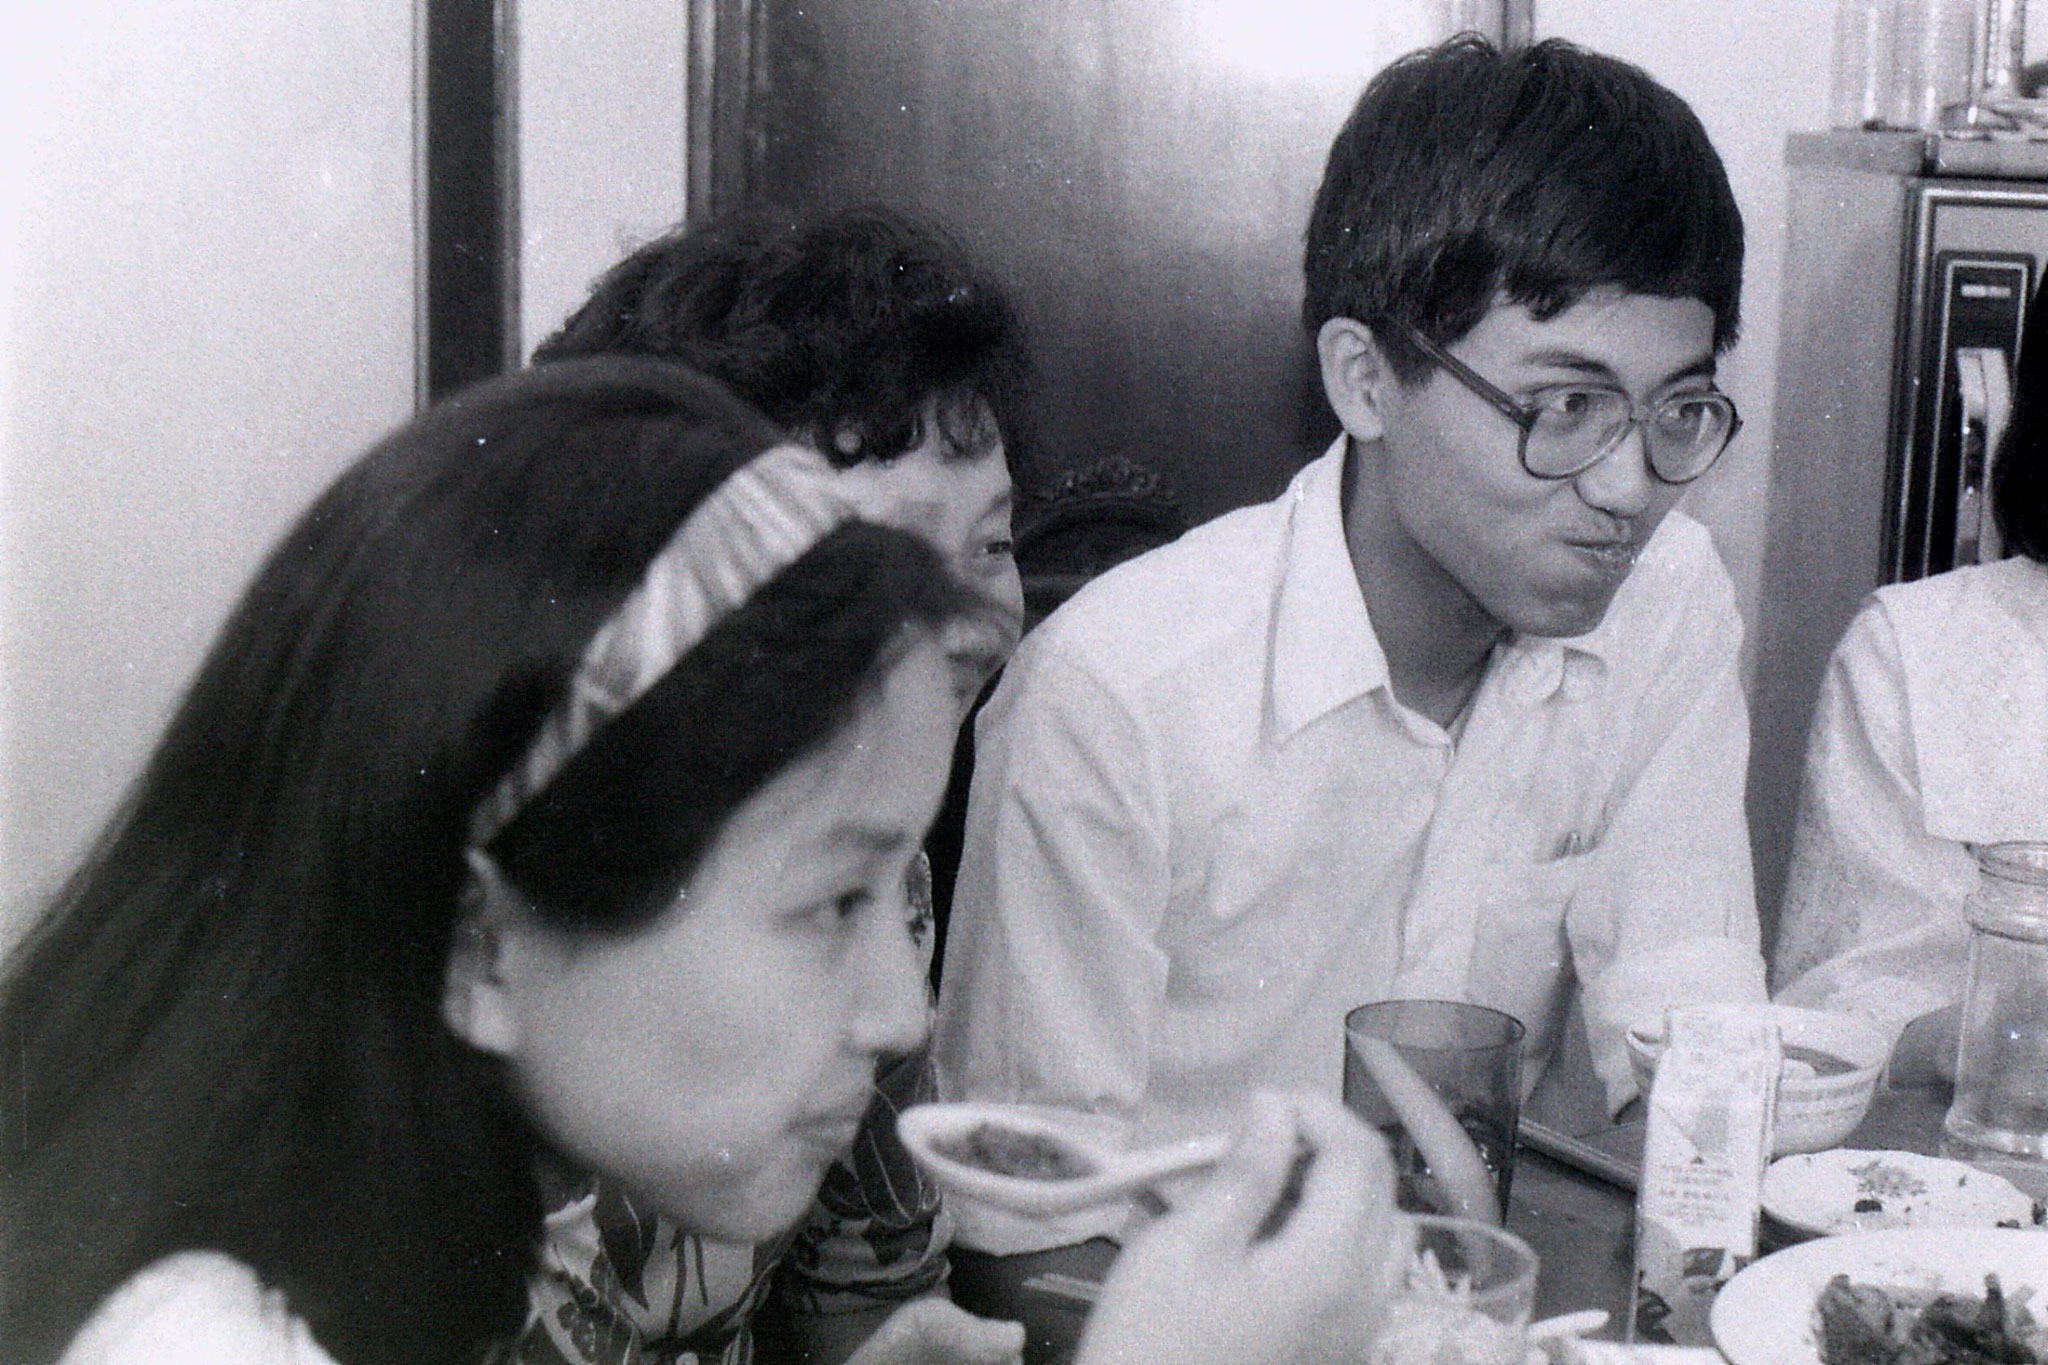 3/7/1989: 14: Shanghai, lunch at Prof. Xu's flat